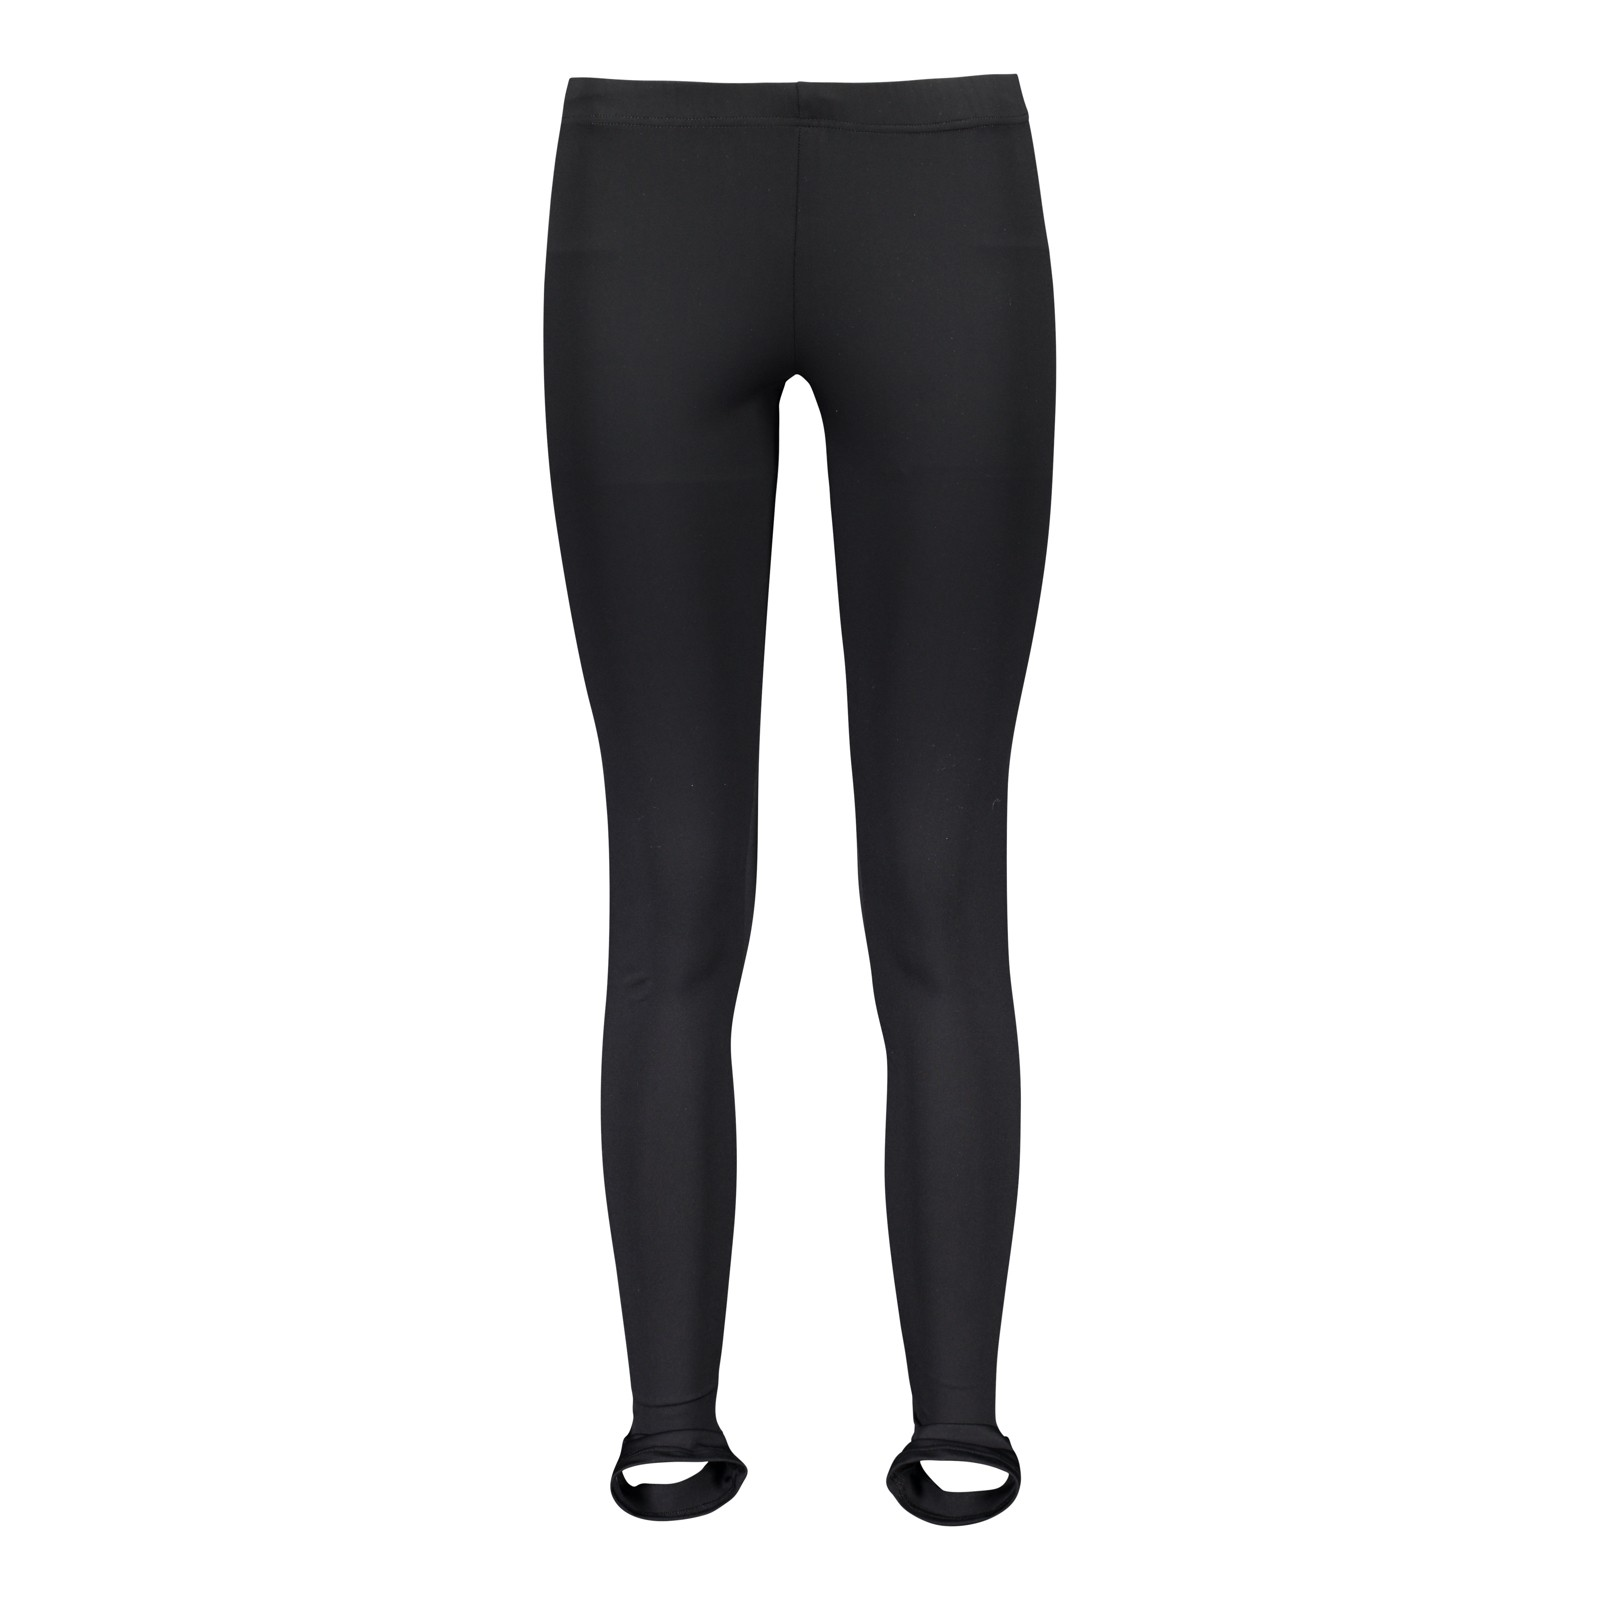 SPRINT Leggings kantalenksulla